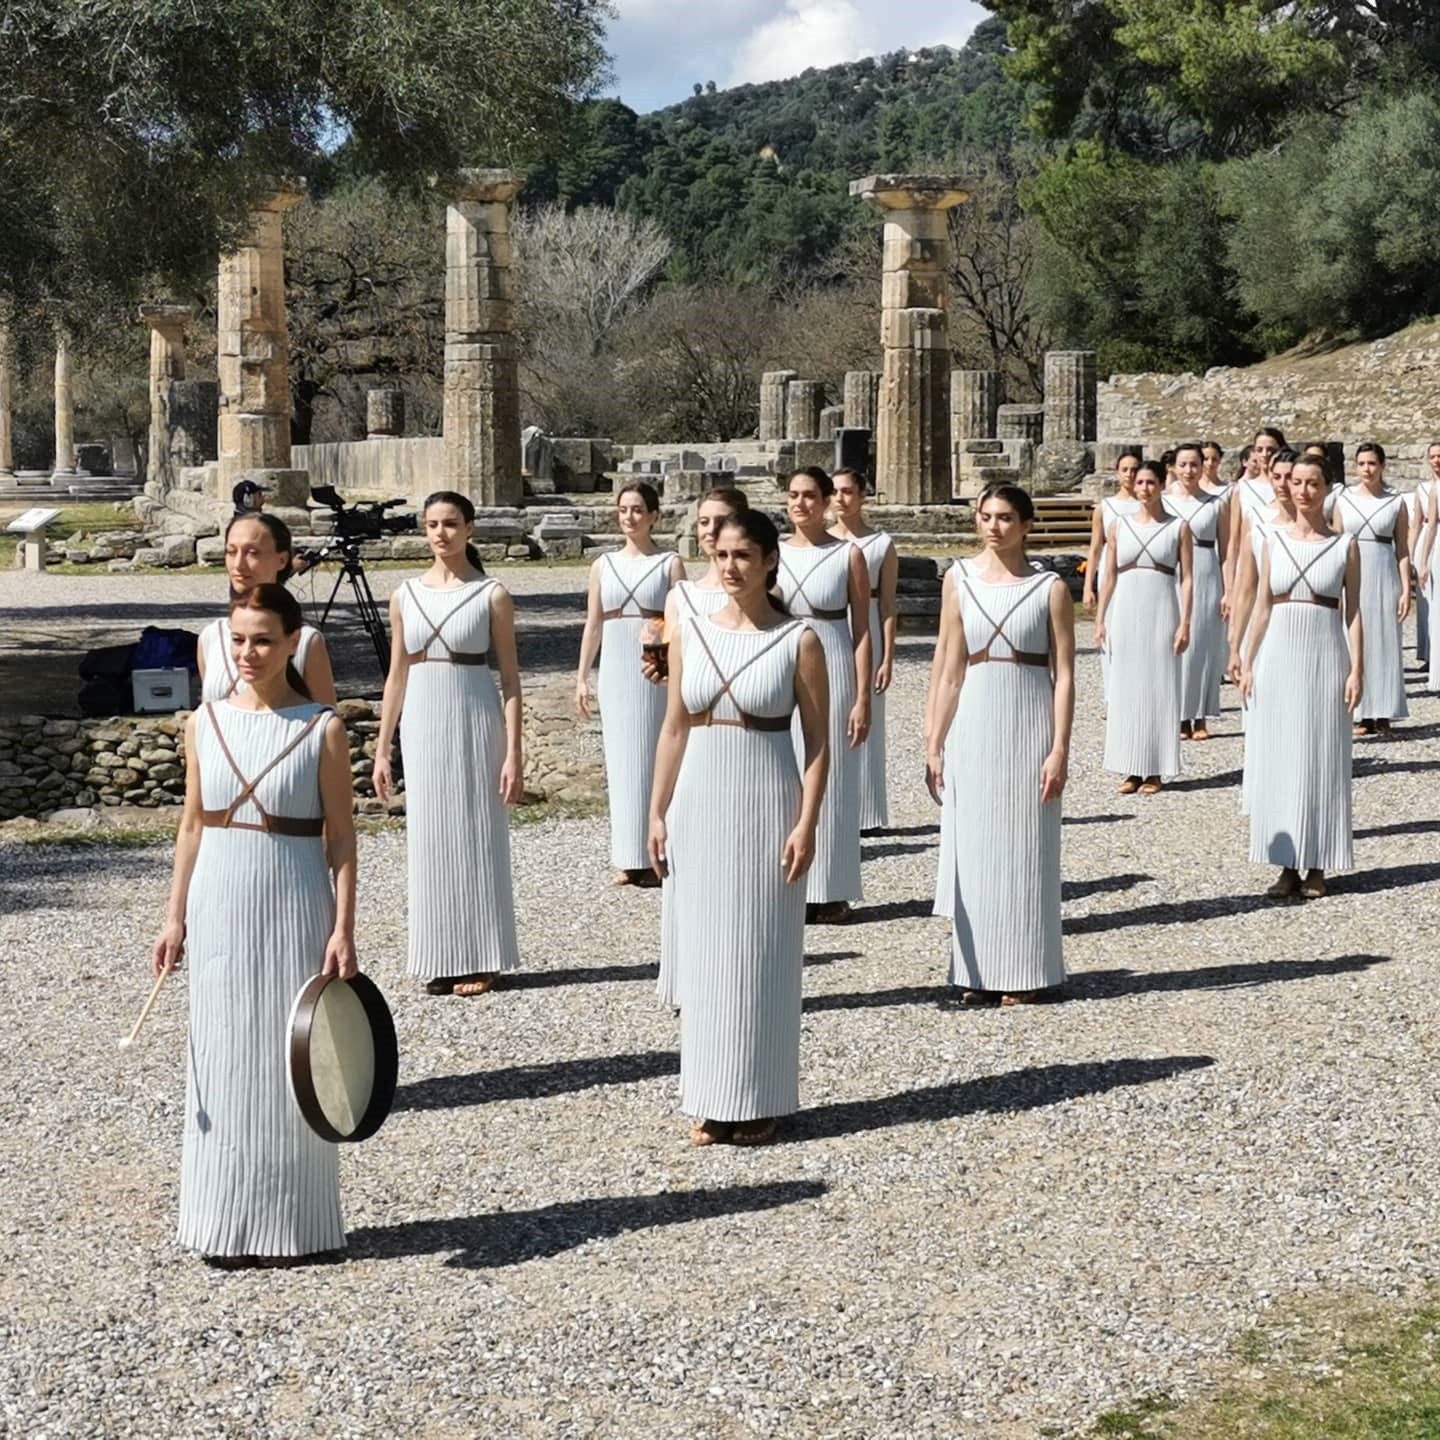 The final dress rehearsal ahead of the Olympic Flame lighting ceremony took place today in Ancient Olympia ©Hellenic Olympic Committee